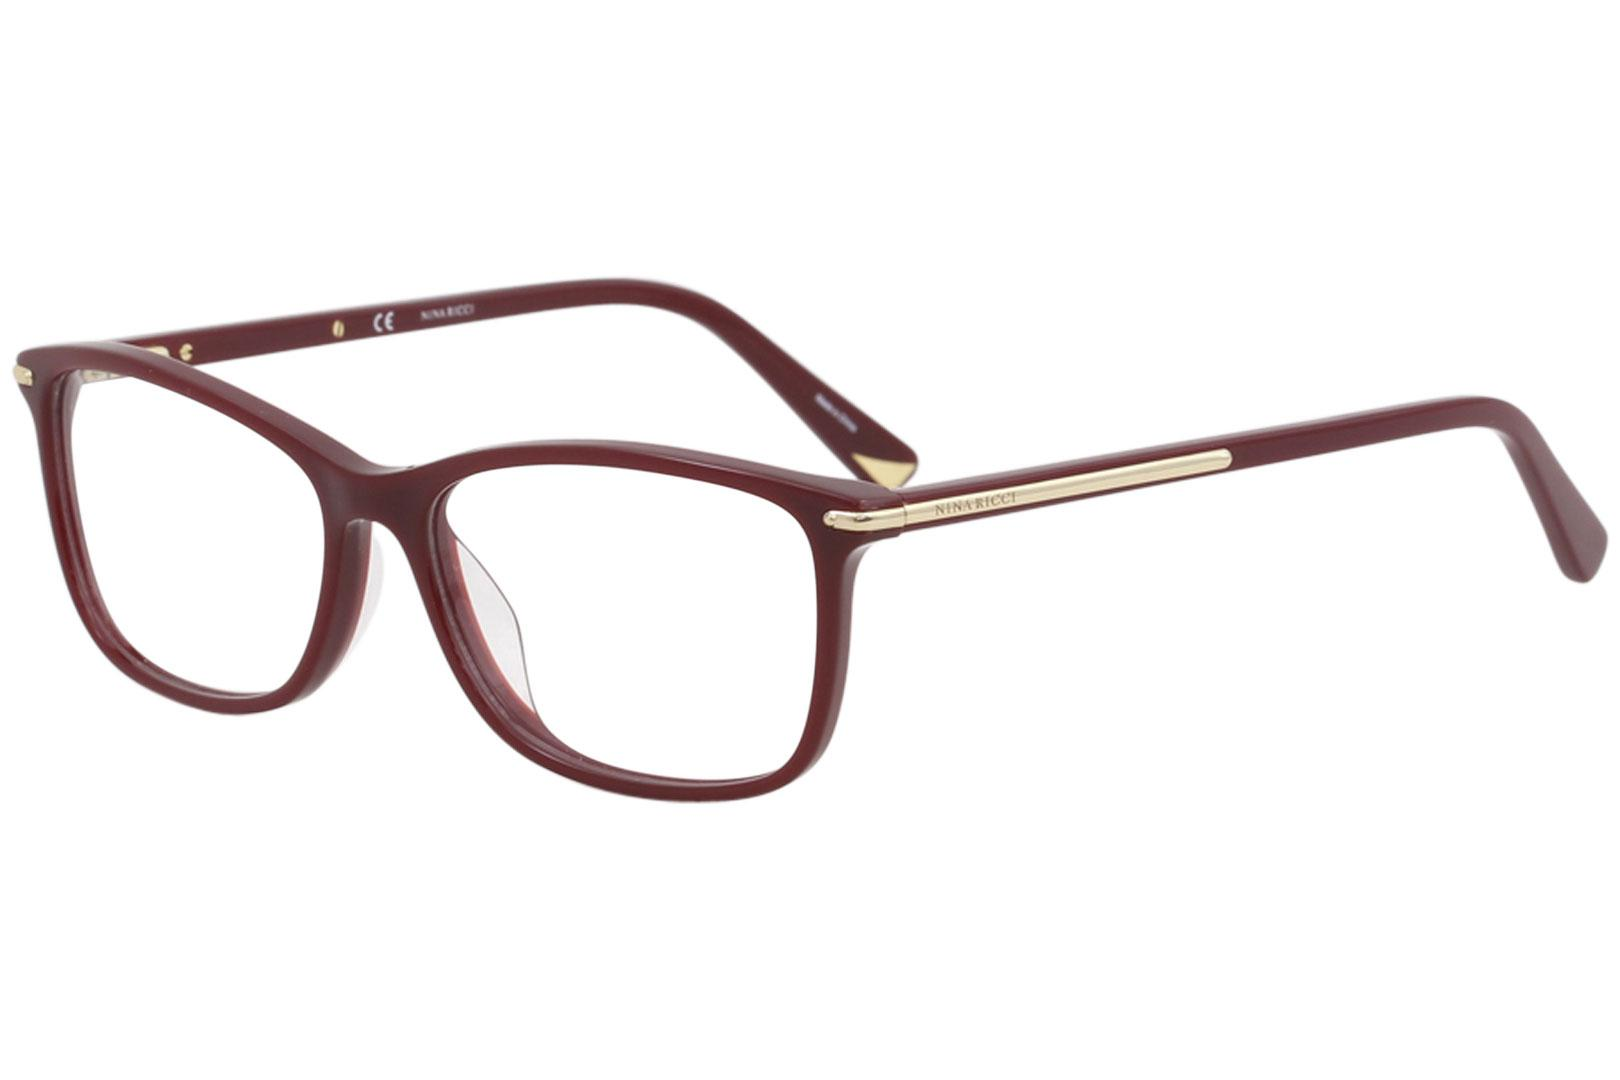 Image of Nina Ricci Eyeglasses VNR038N VNR/038/N 08DU Shiny Burgundy Optical Frame 53mm - Shiny Burgundy   08DU - Lens 53 Bridge 15 Temple 140mm